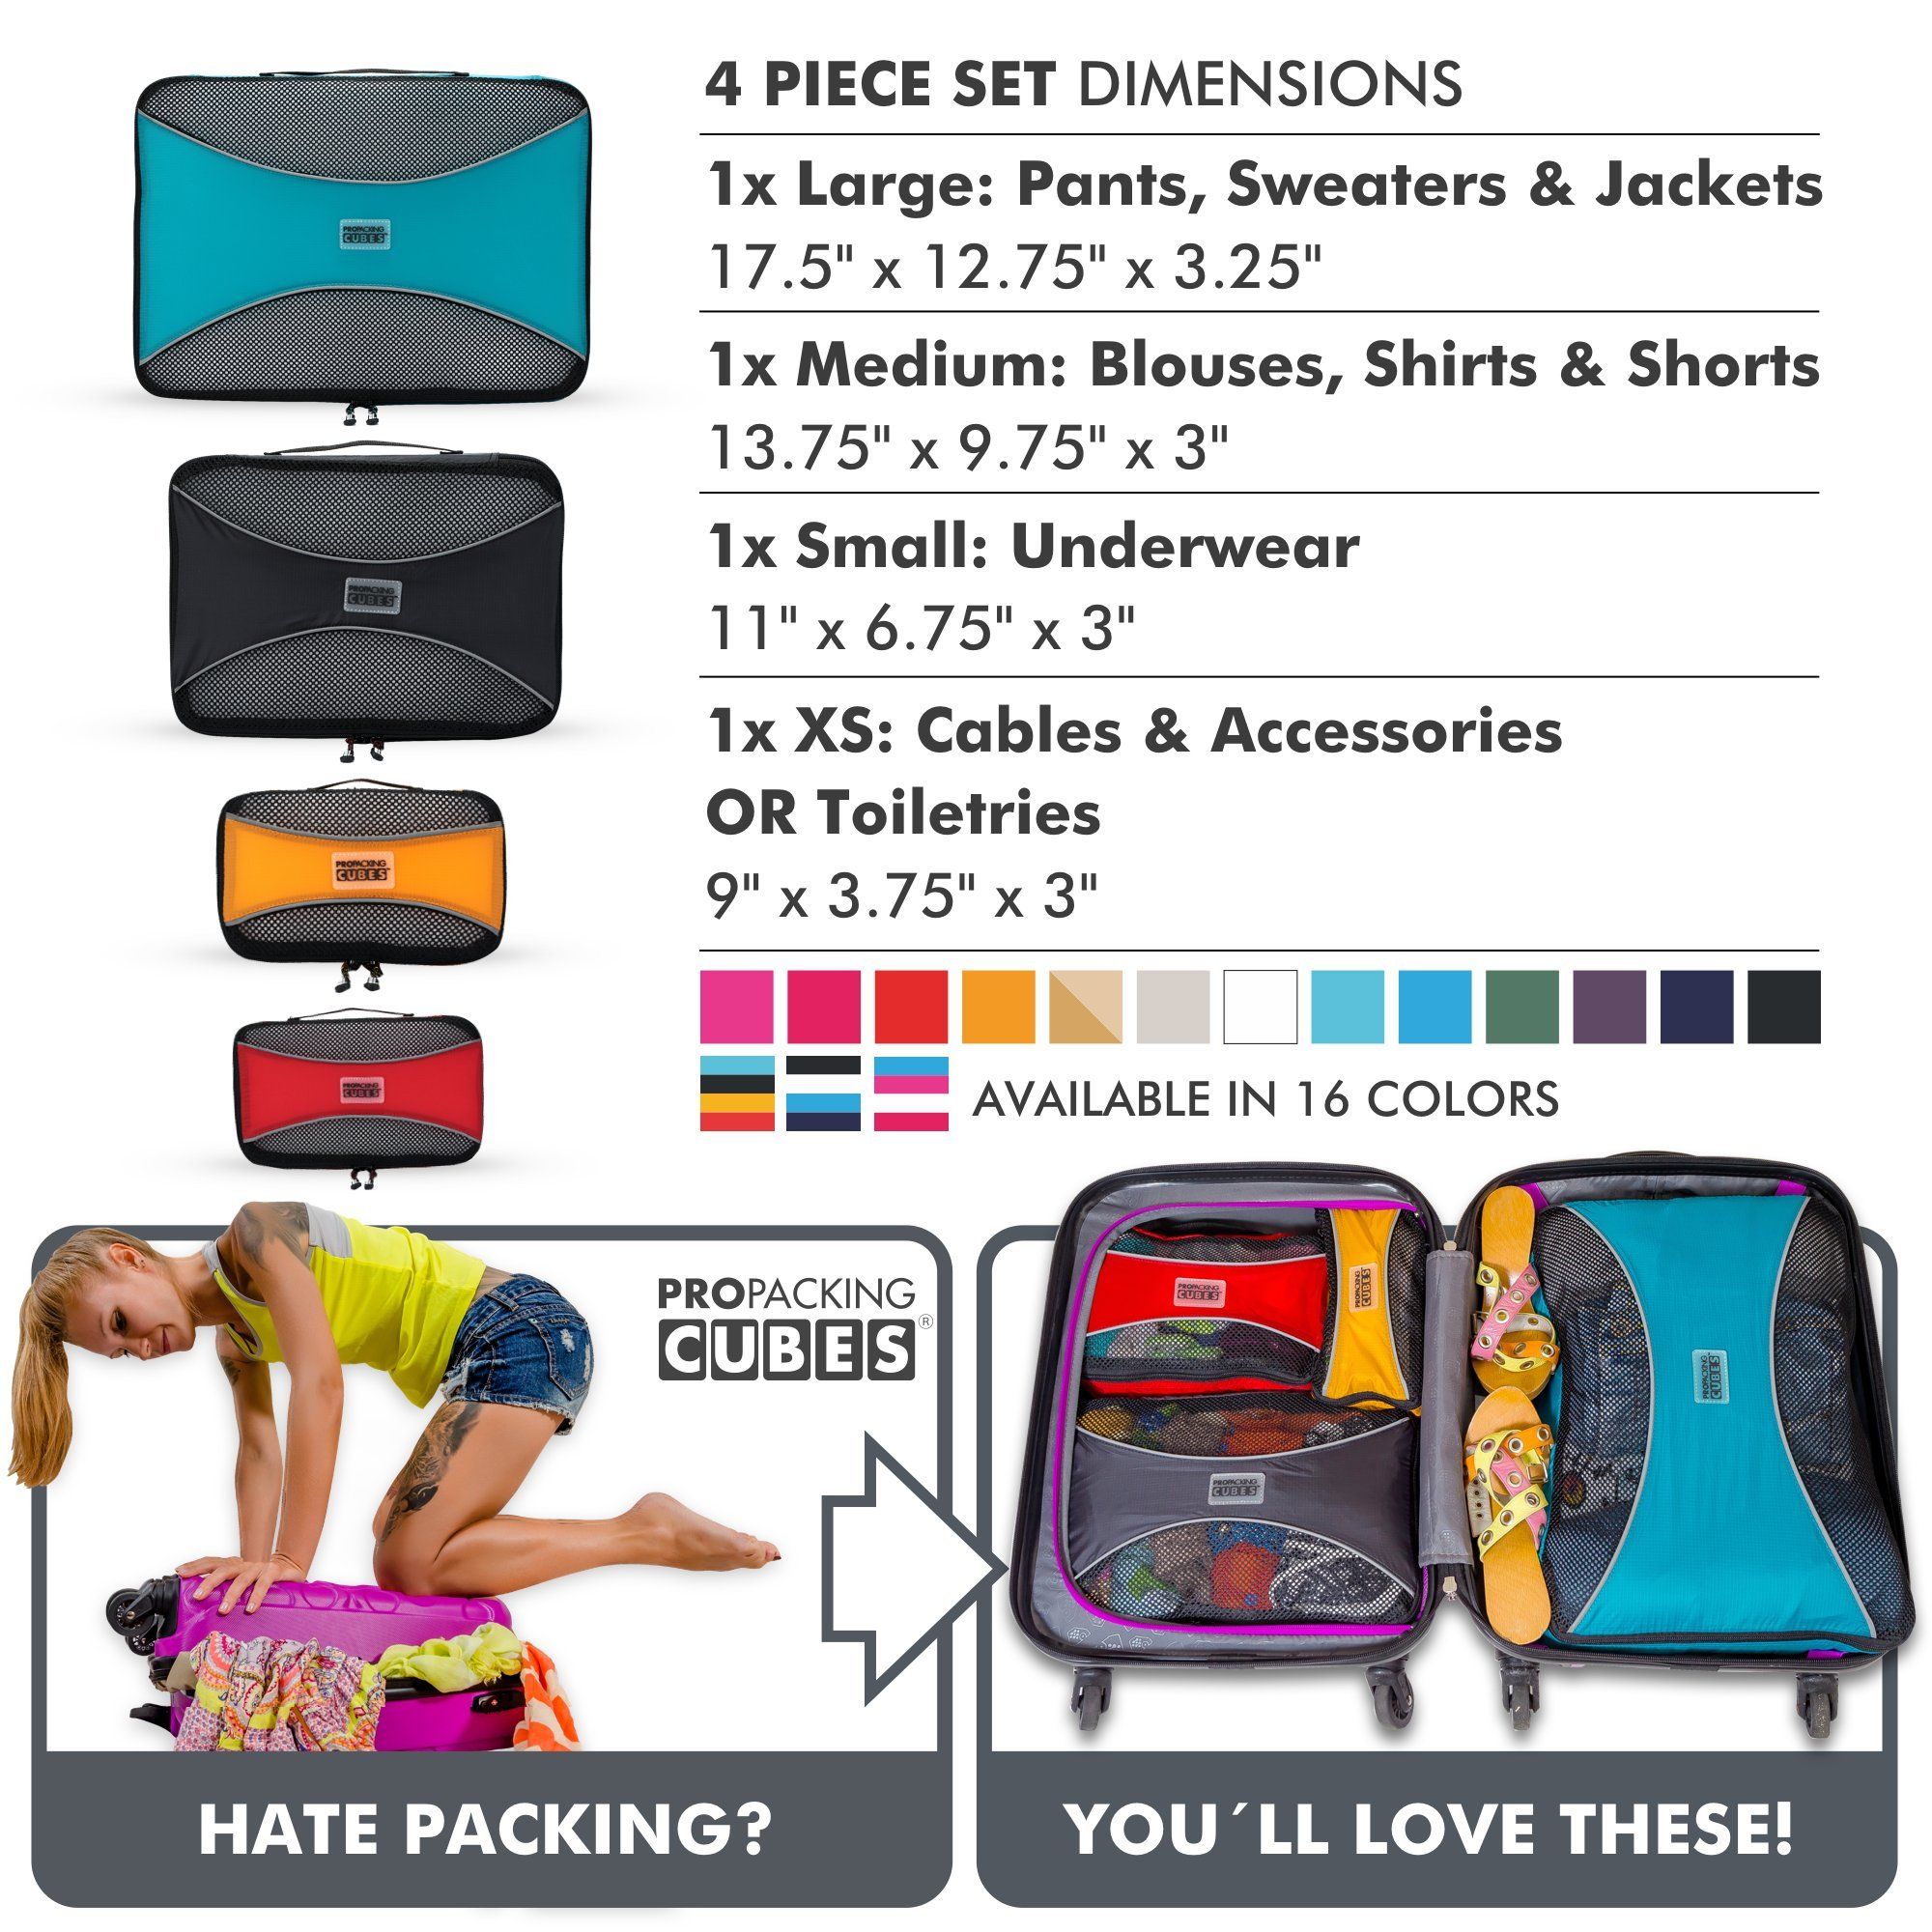 PRO Packing Cubes  Lightweight Travel - Packing for Carry-on Luggage, Suitcase and Backpacking Accessories Set, Mixed Colors - 4 Piece by Pro Packing Cubes (Image #8)